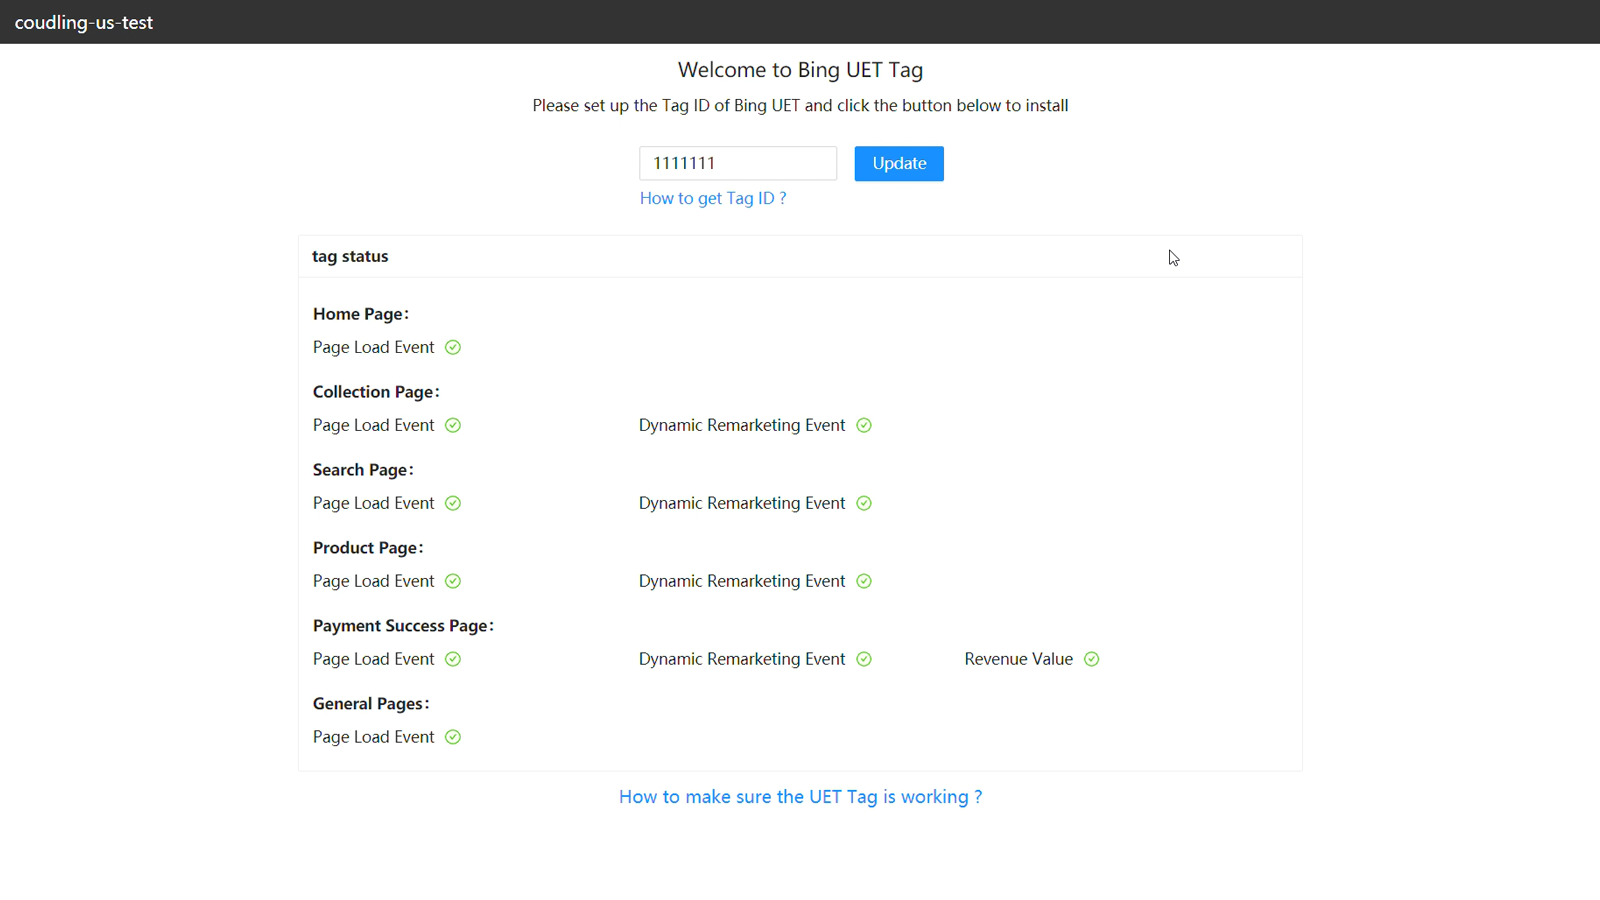 UET Tag has been installed